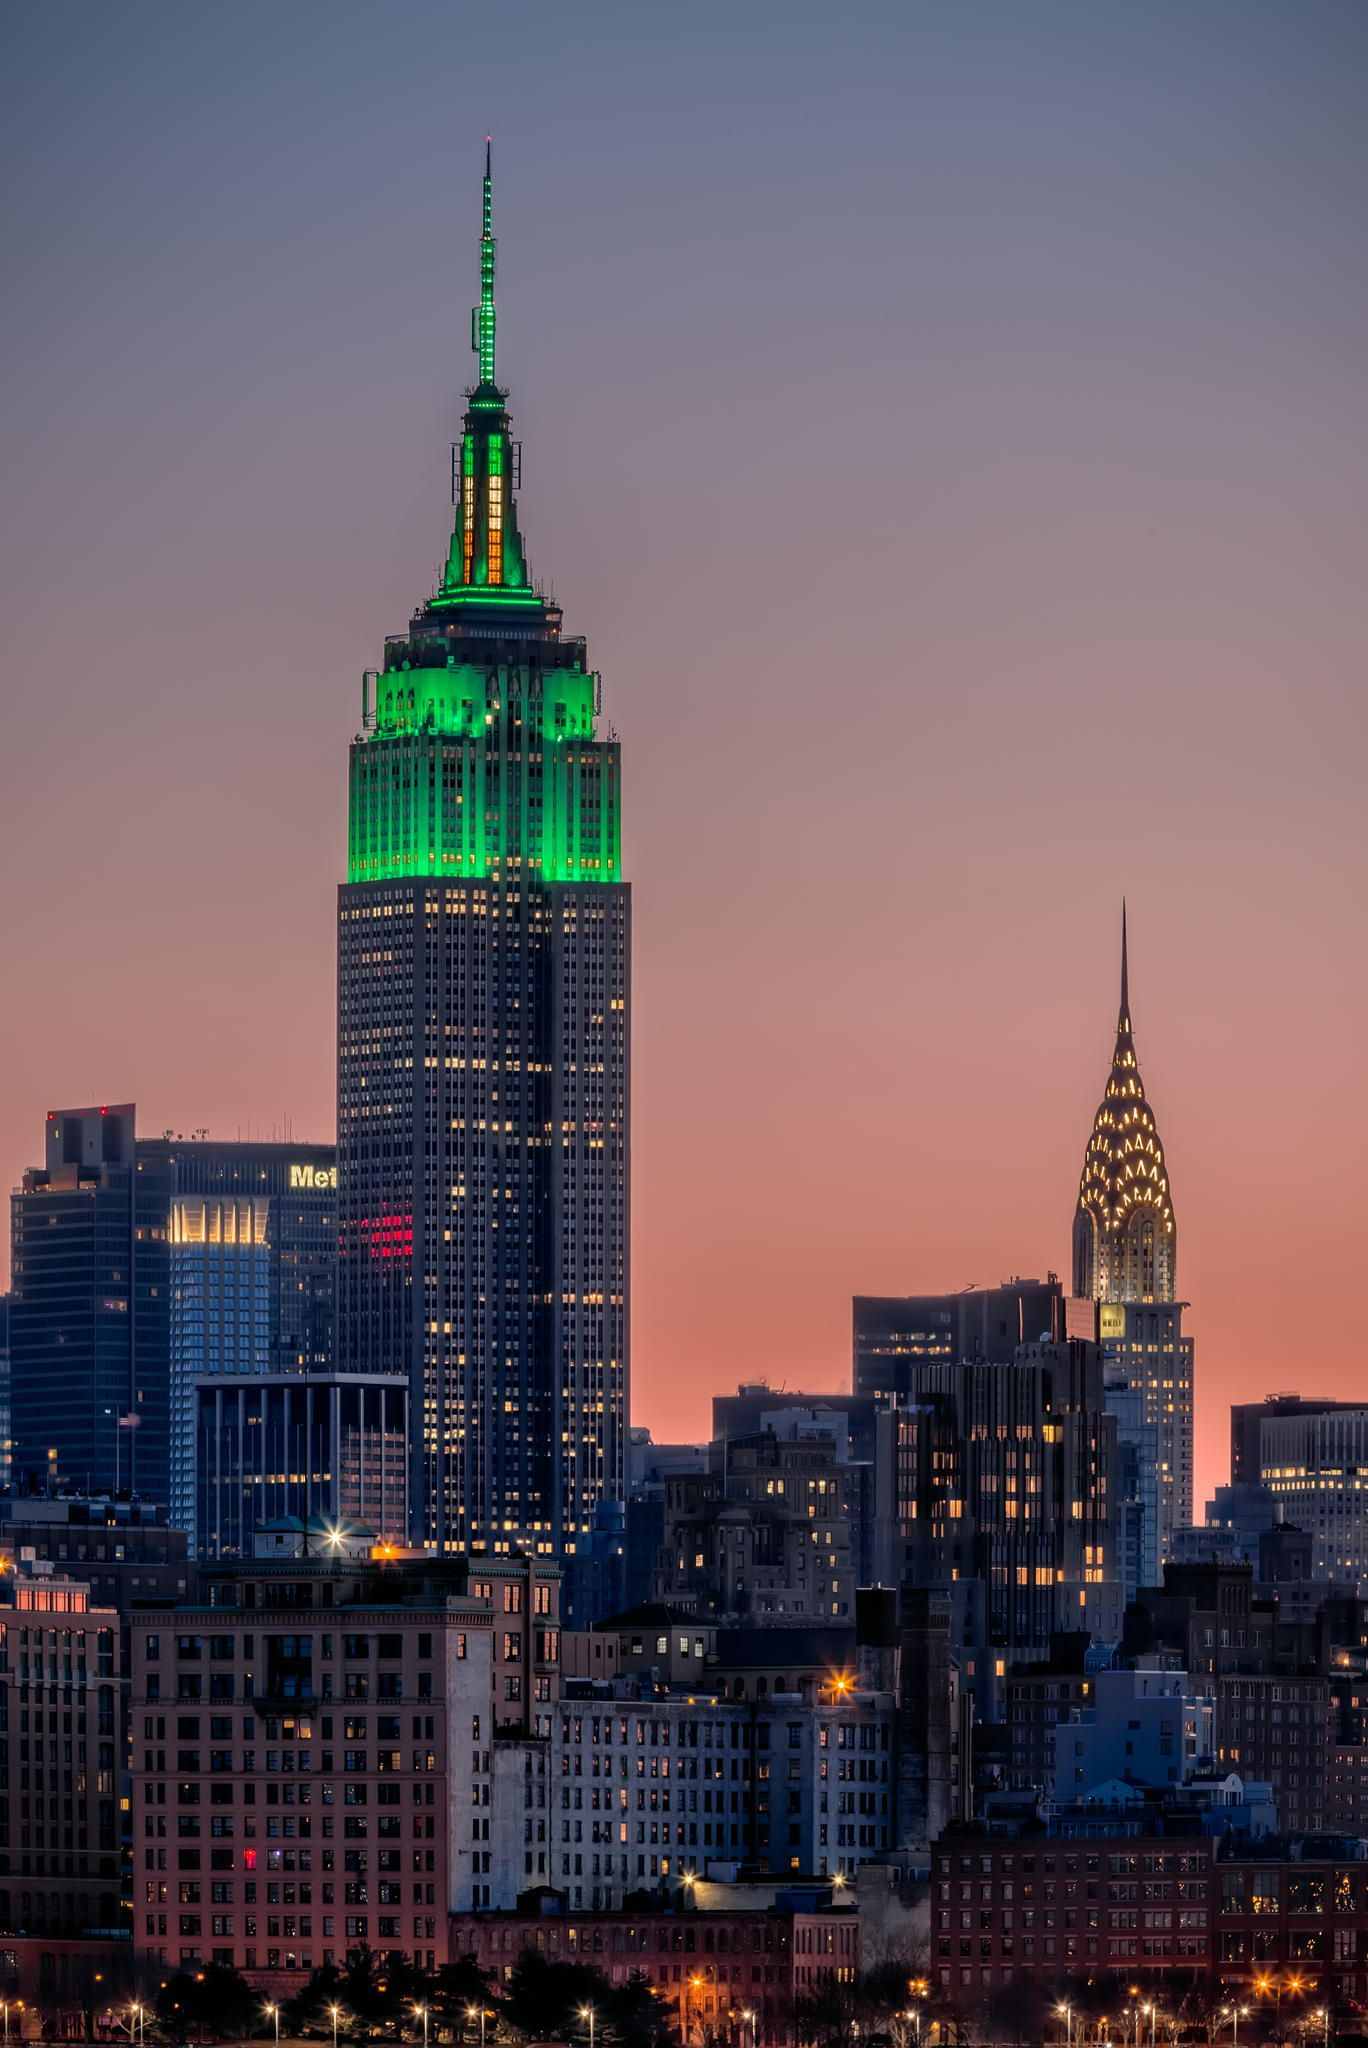 Empire State Building lit up in green for St Patrick's Day